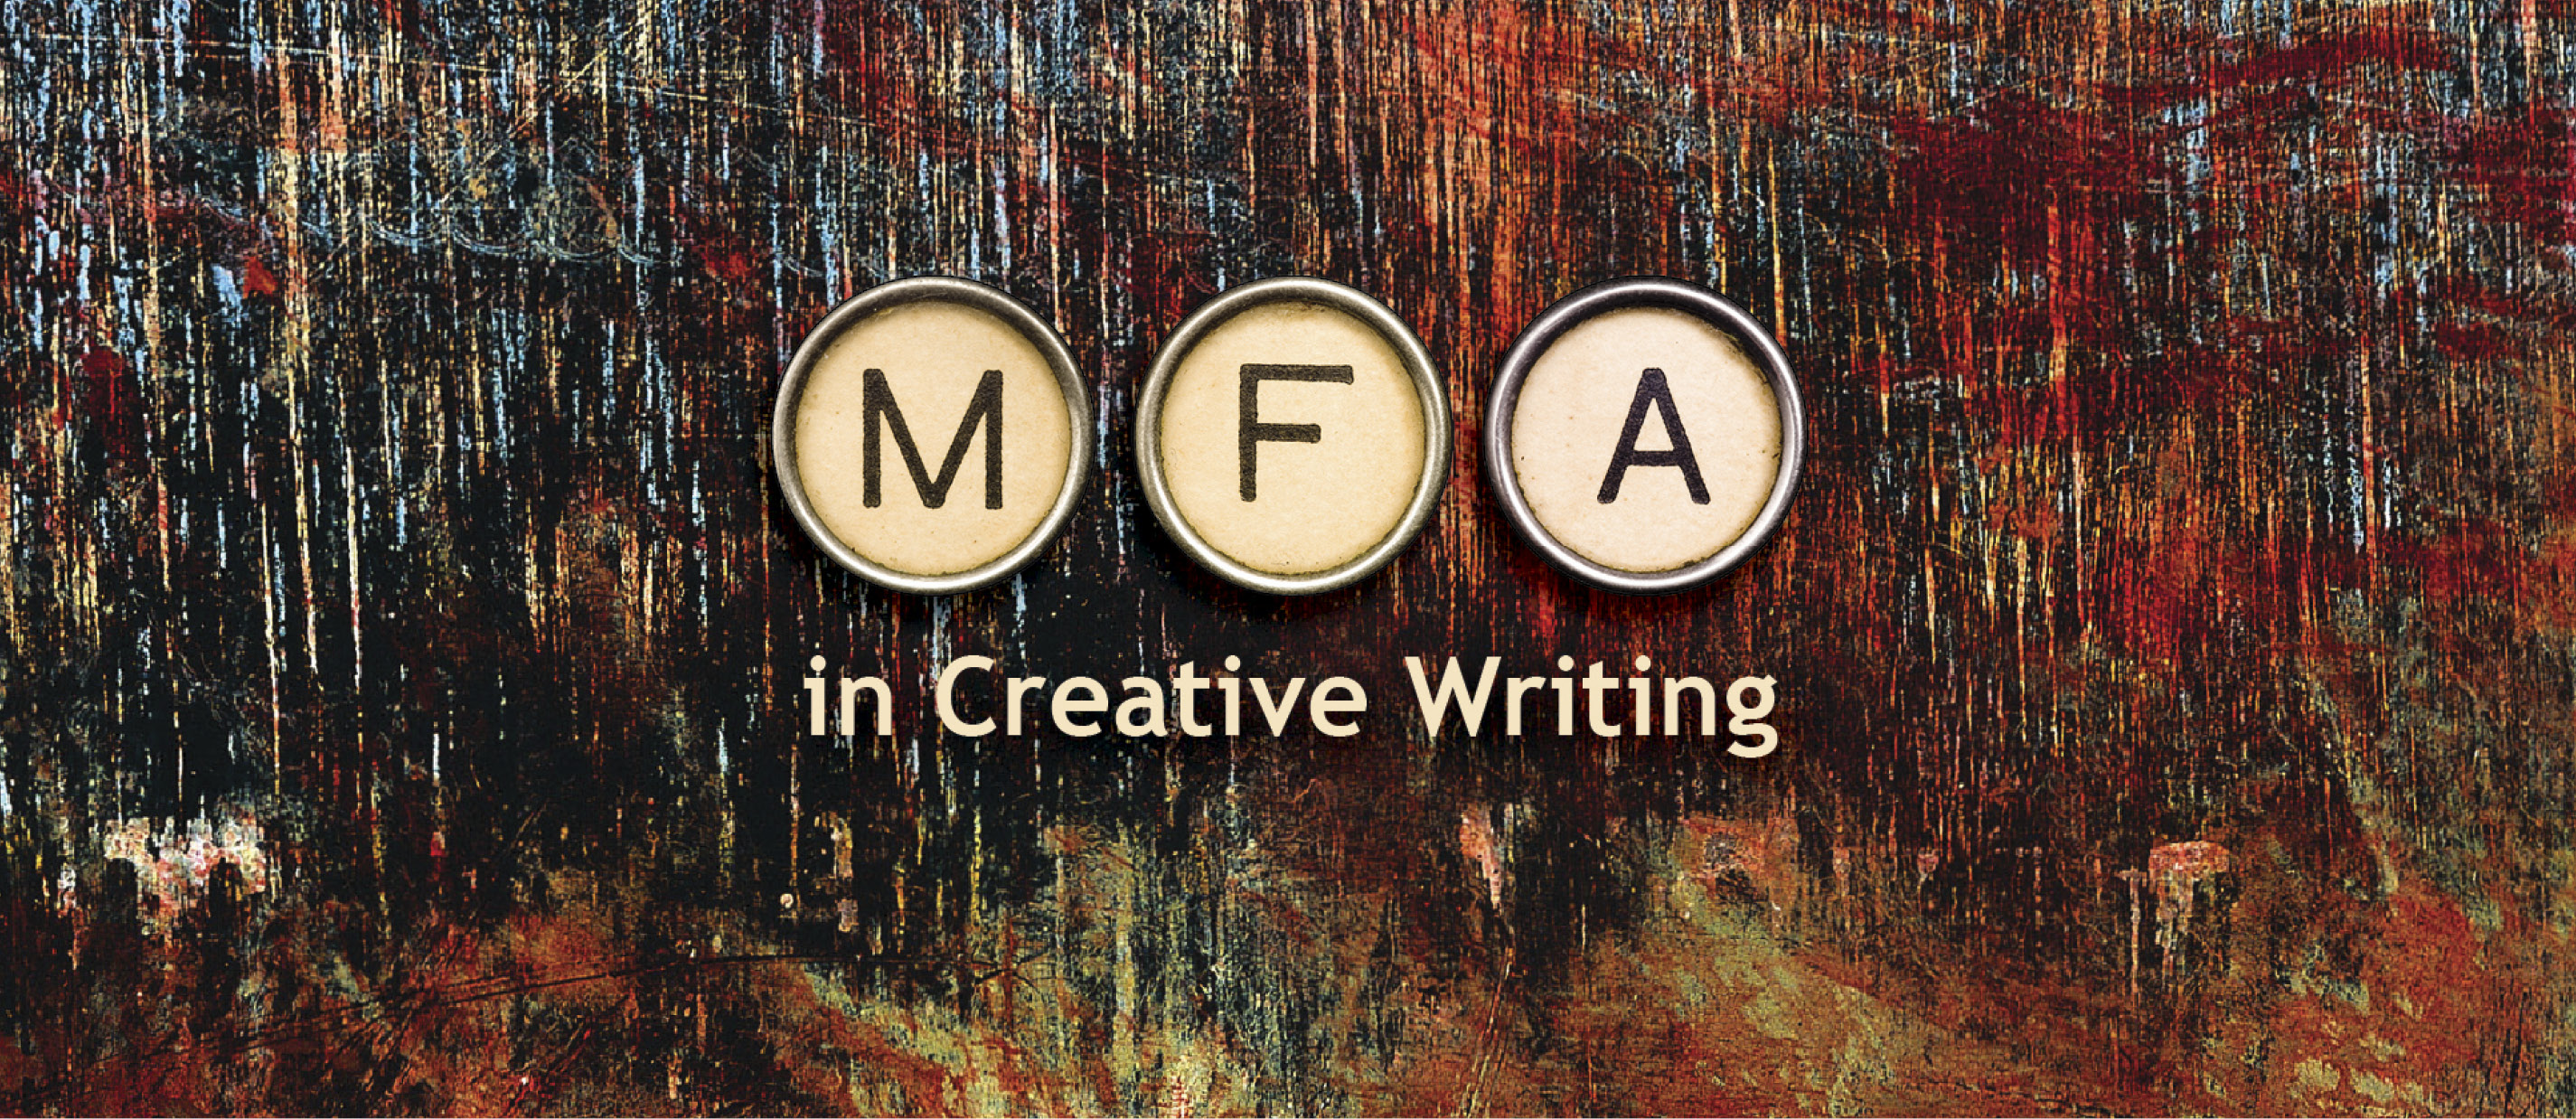 mfa creative writing university of maryland Mfa creative writing uk maryland  rinaldi a farewell to arms analysis essay alcoholism social problem essays on the great university essay writing service .